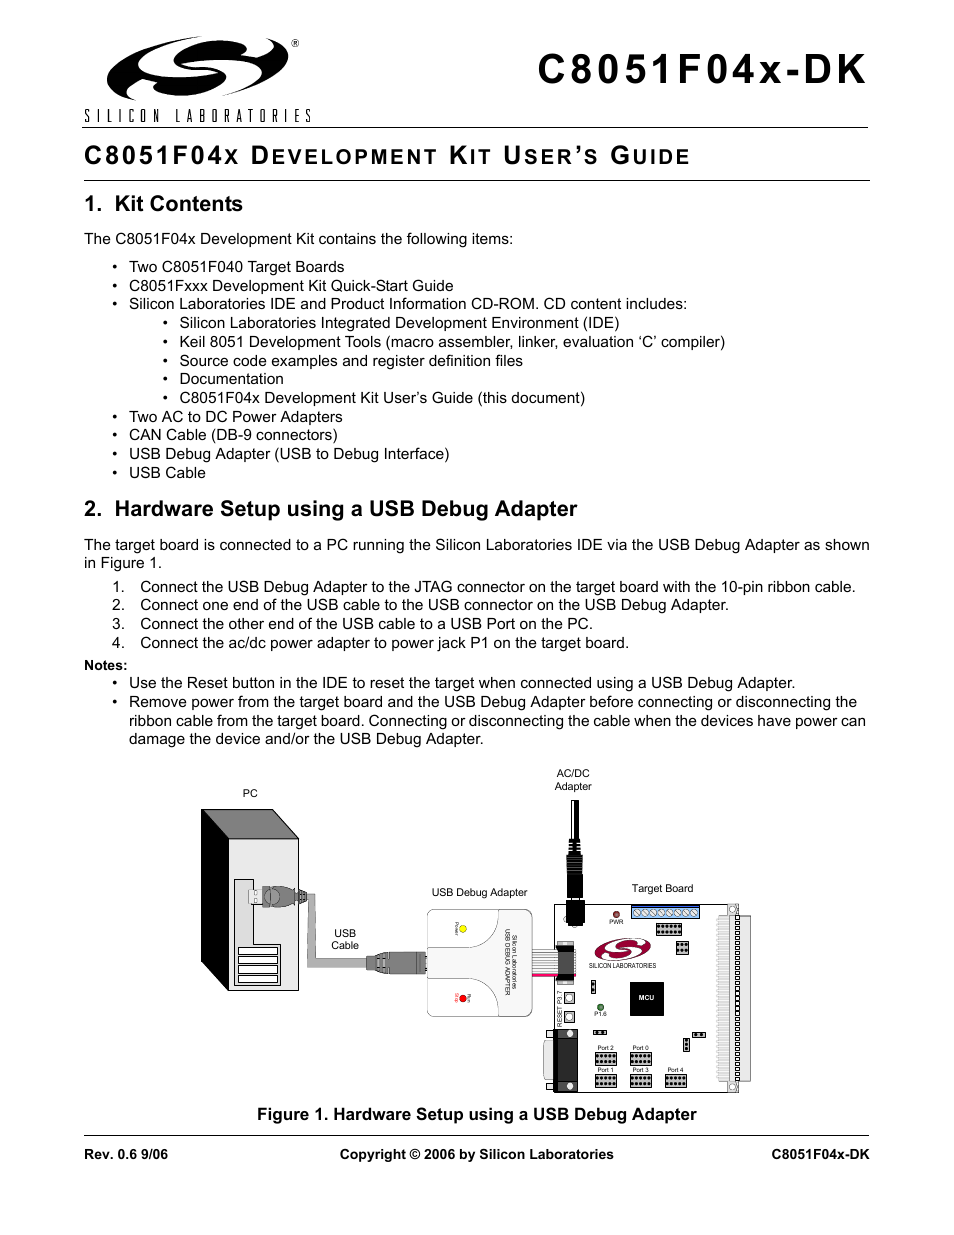 Silicon Laboratories C8051f04x Dk User Manual 16 Pages Usb Debug Cable Schematic